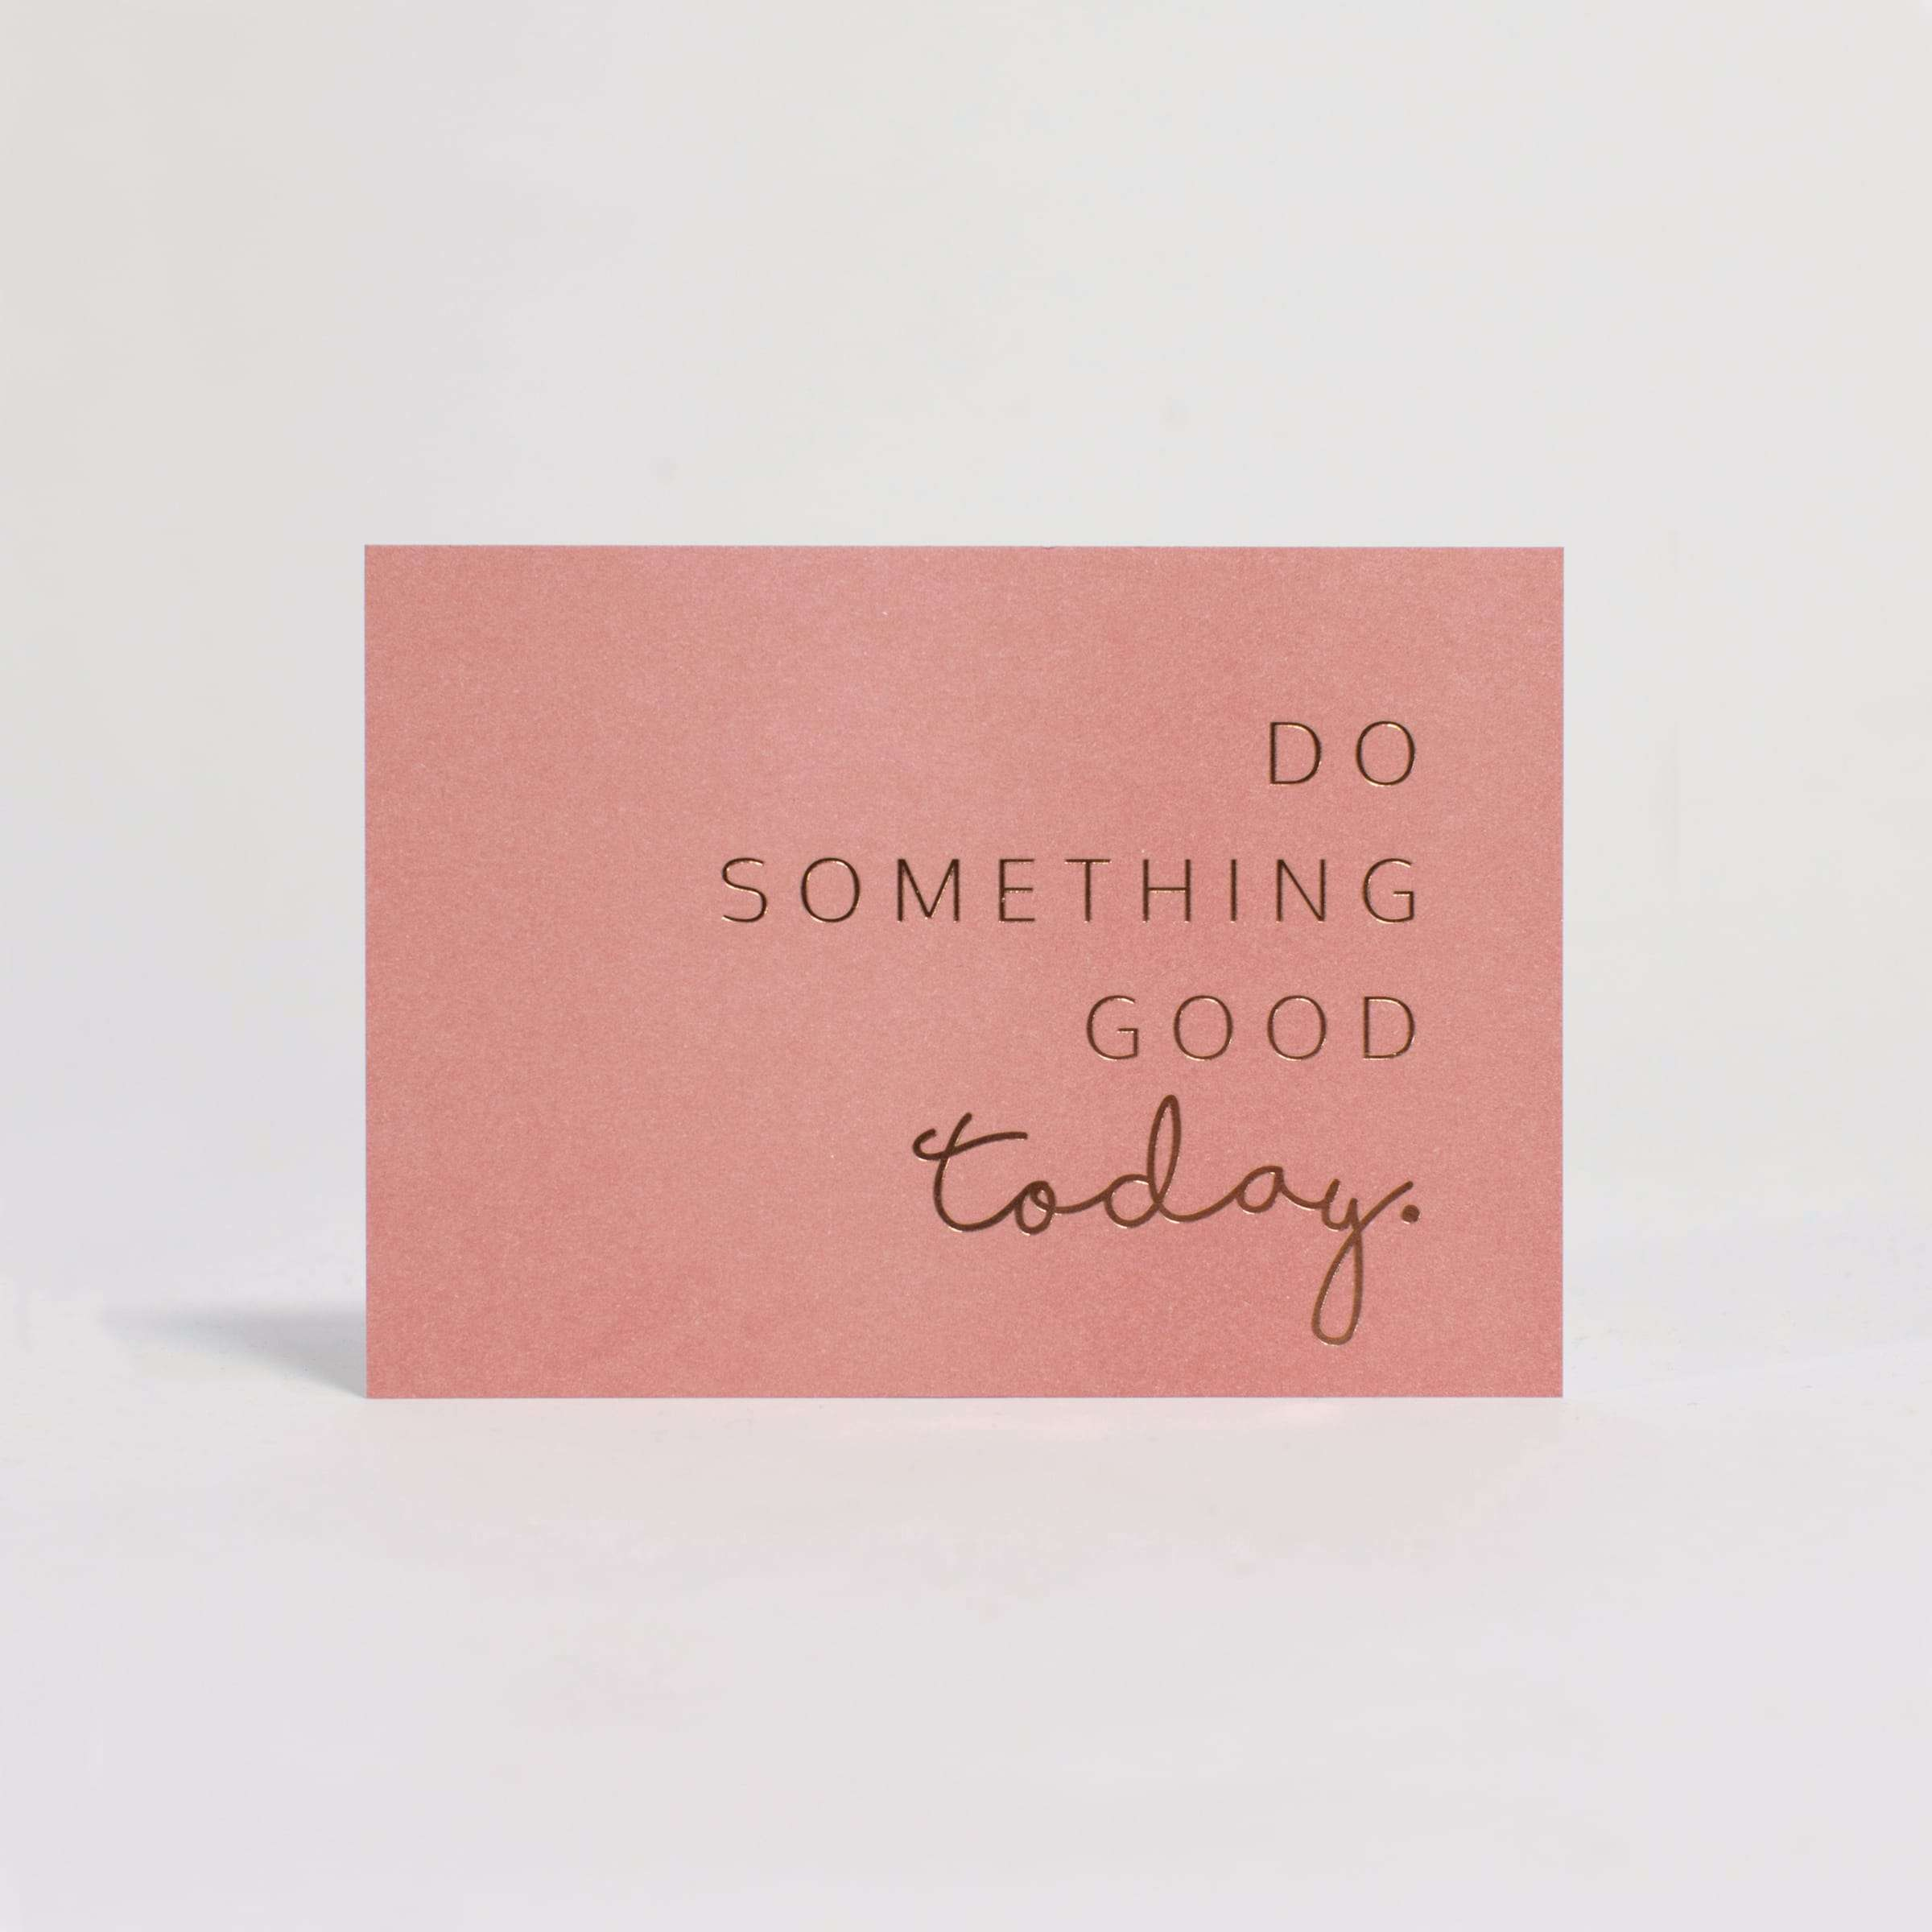 JO JUDY Pink Card Dusty Pink Today 01 1280x1280 2x